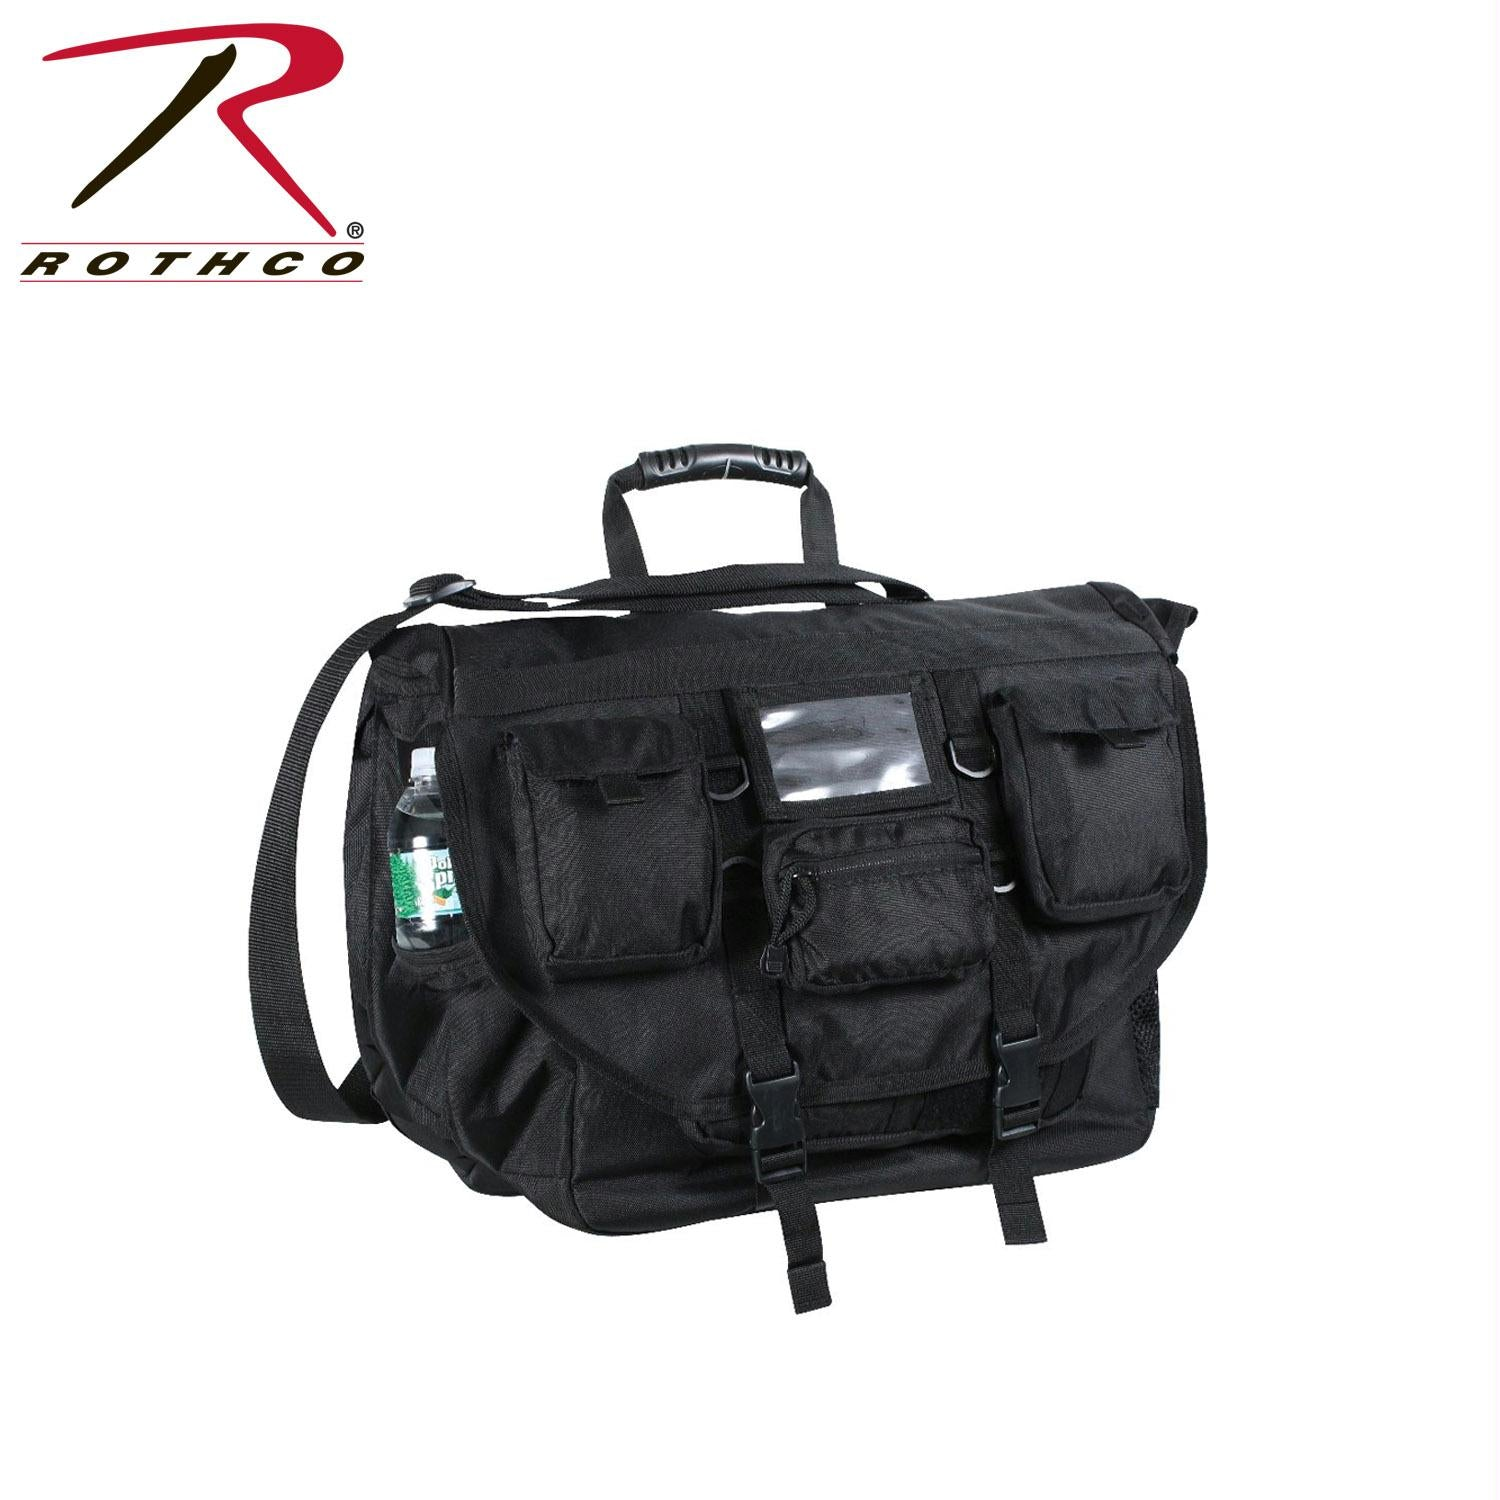 Rothco Lightweight Special Ops Laptop Bag - Black